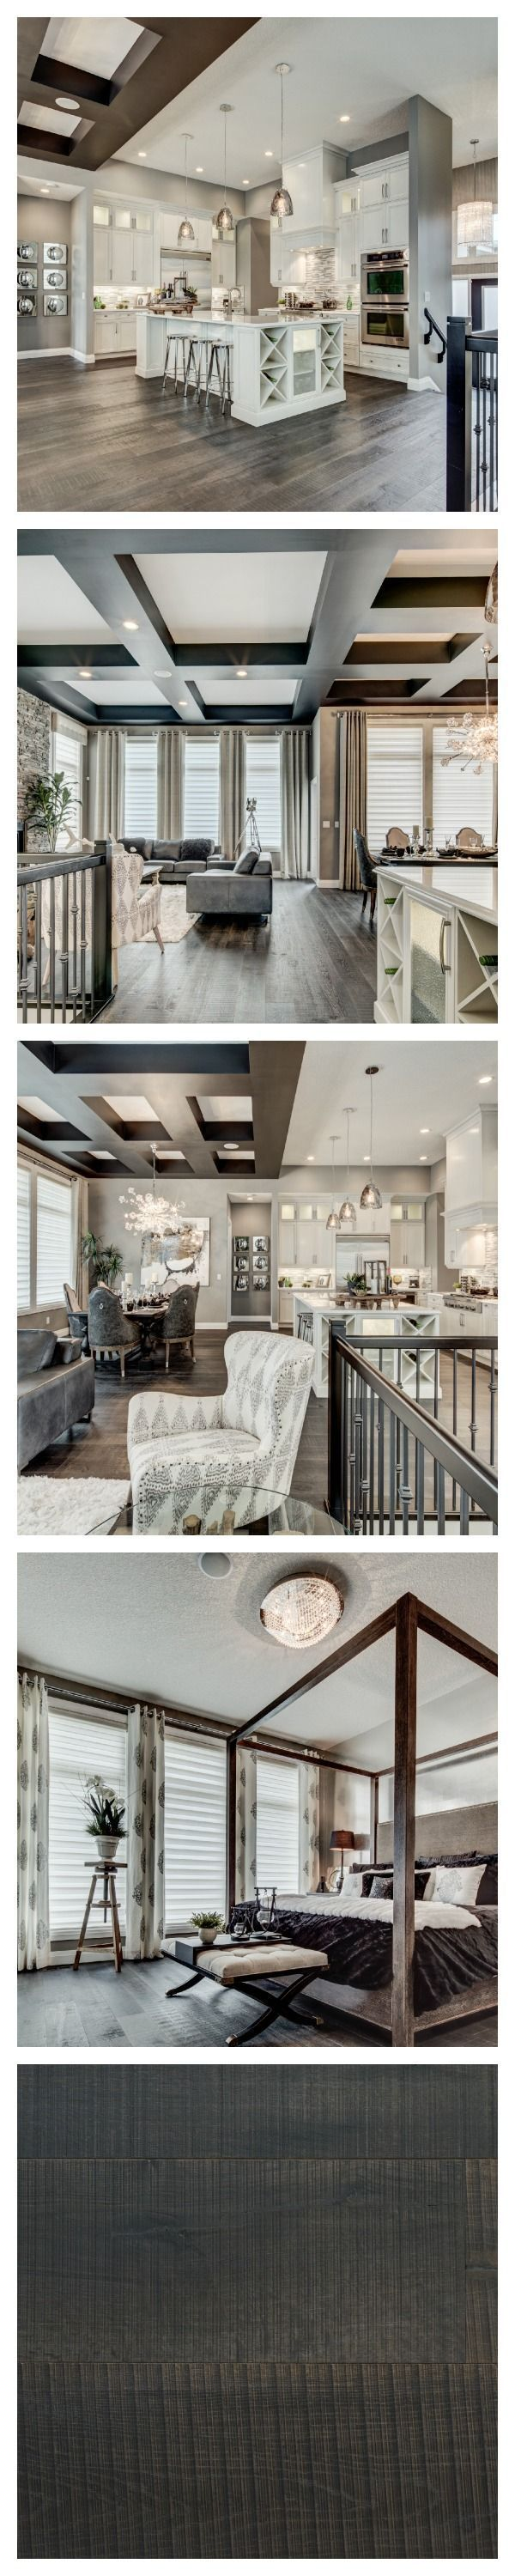 There Is A Decidedly Glamorous Edge To This Breathtaking Model Home By  Alquinn Homes In Edmonton. The Sophisticated Palette Of Greys And Creams  Adds To The ... Part 39